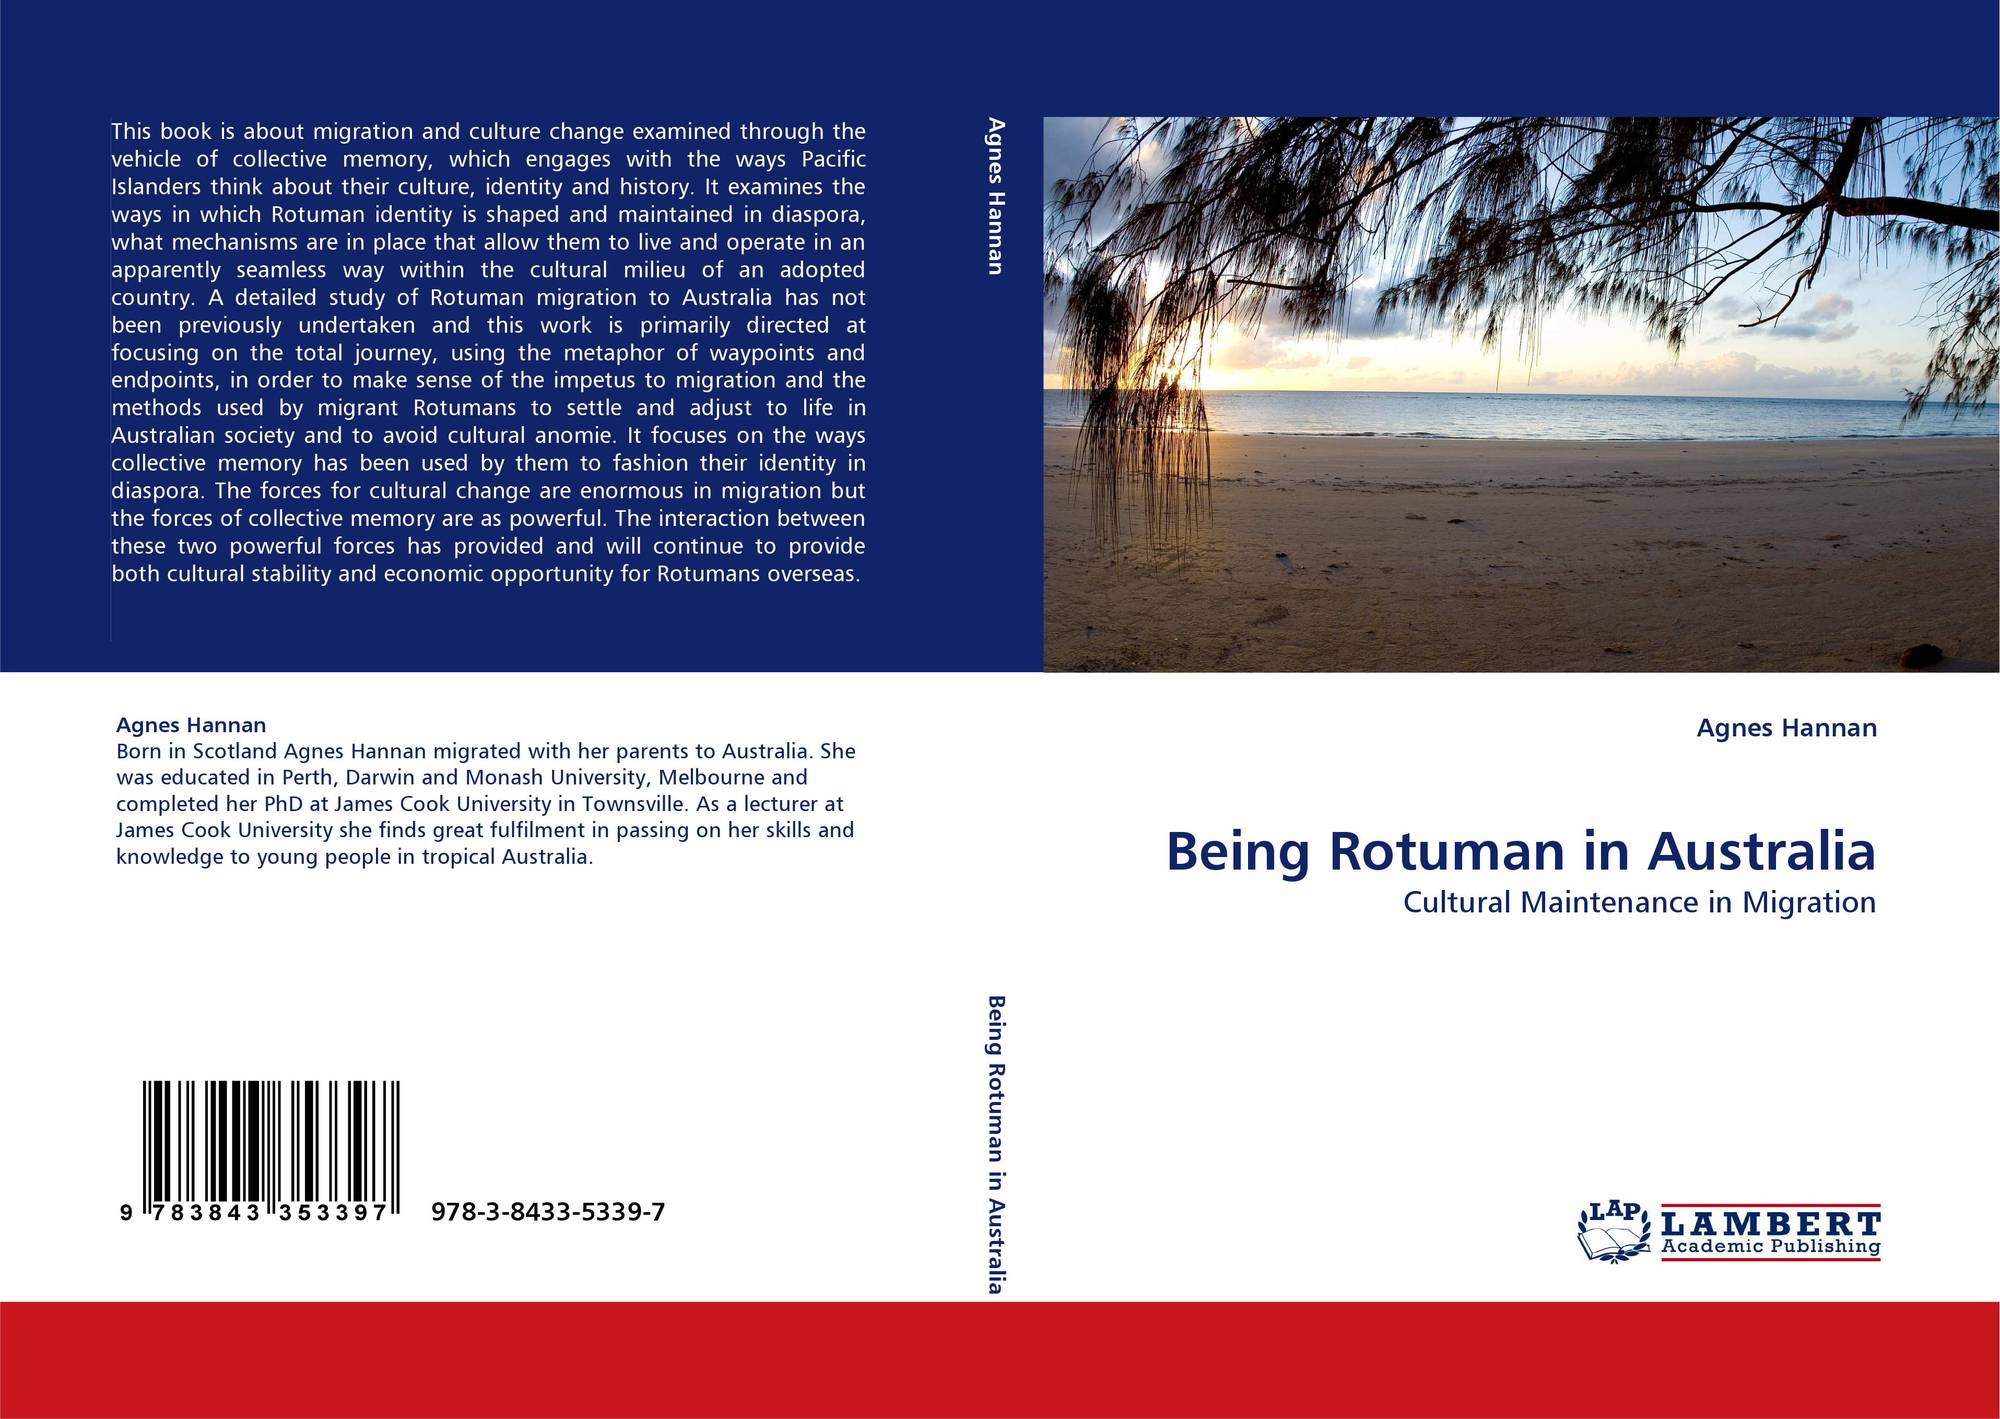 Being Rotuman in Australia